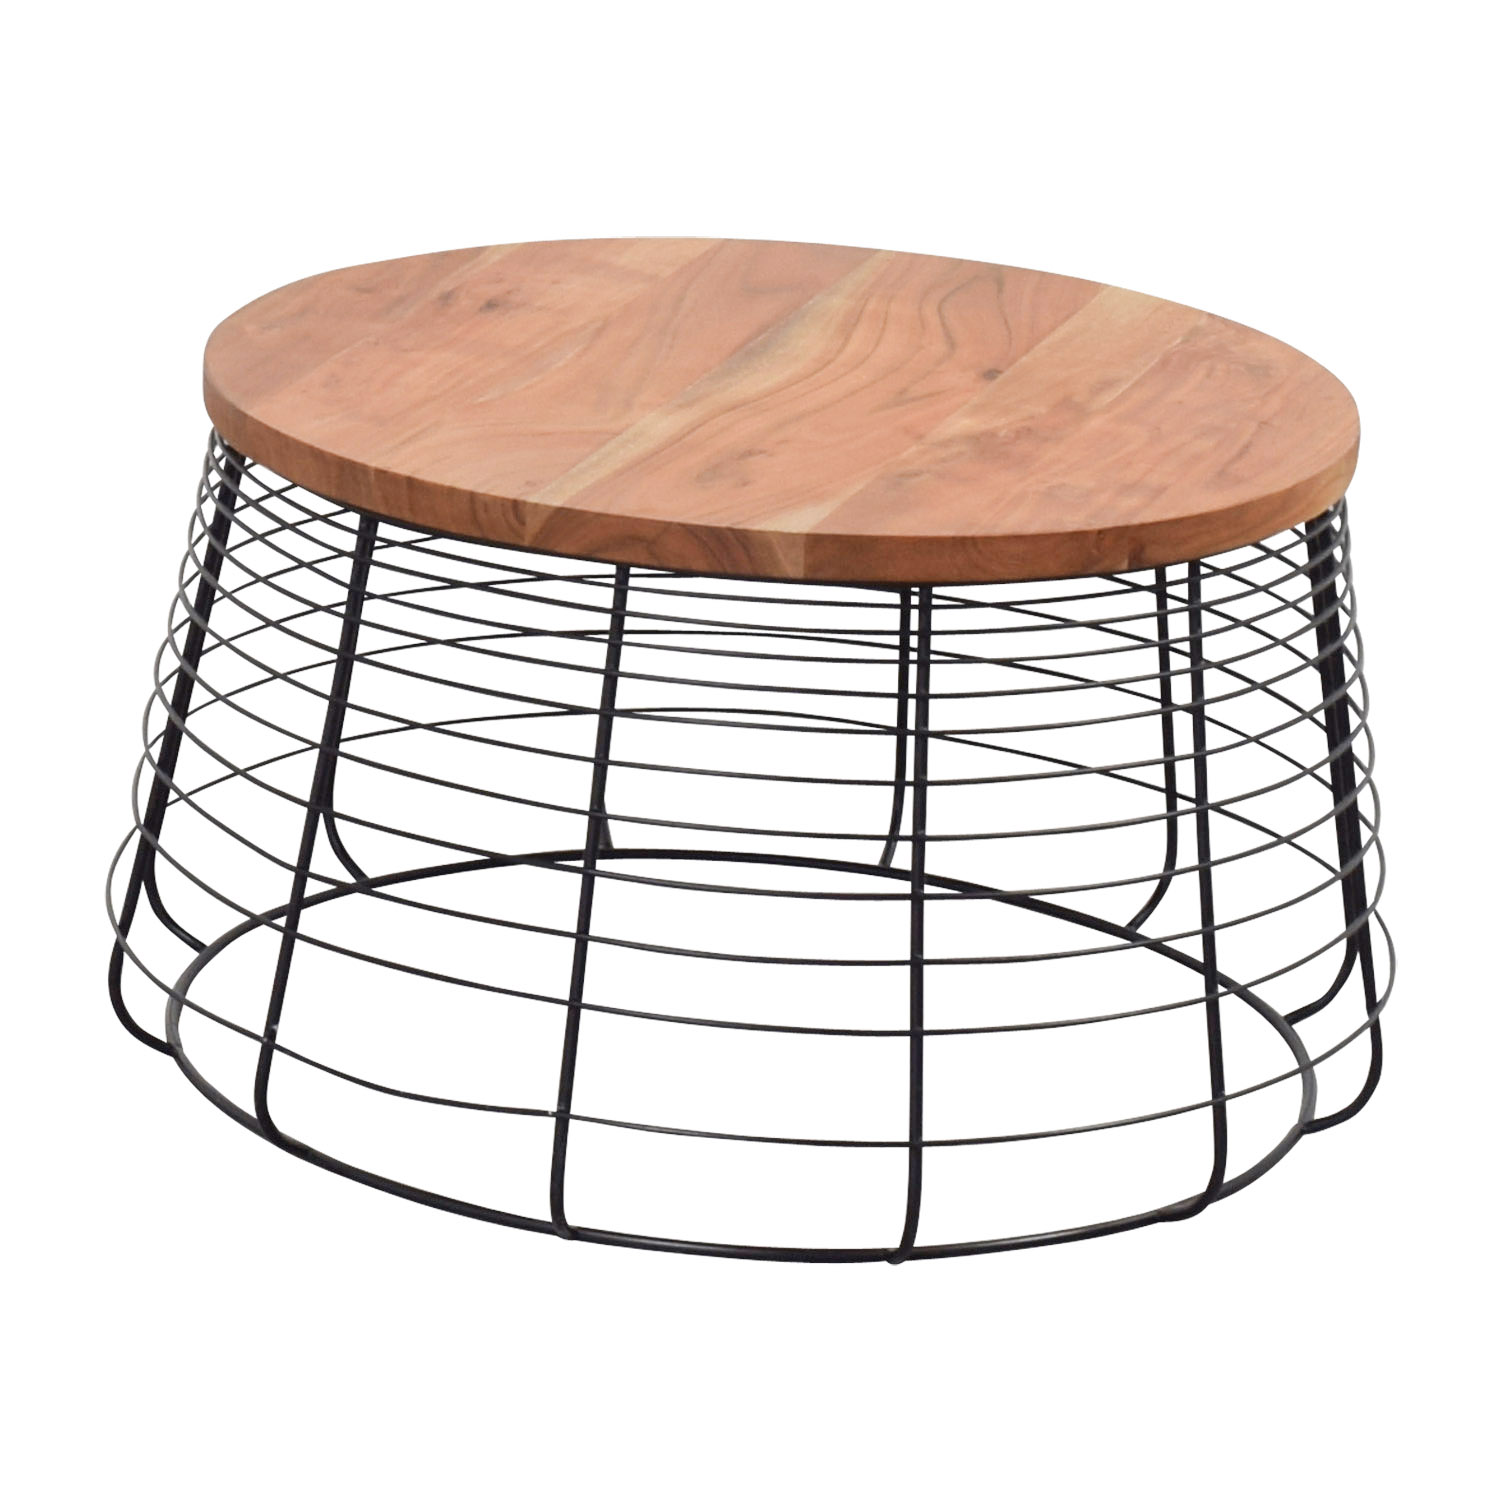 CB2 CB2 Apis Round Coffee Table second hand